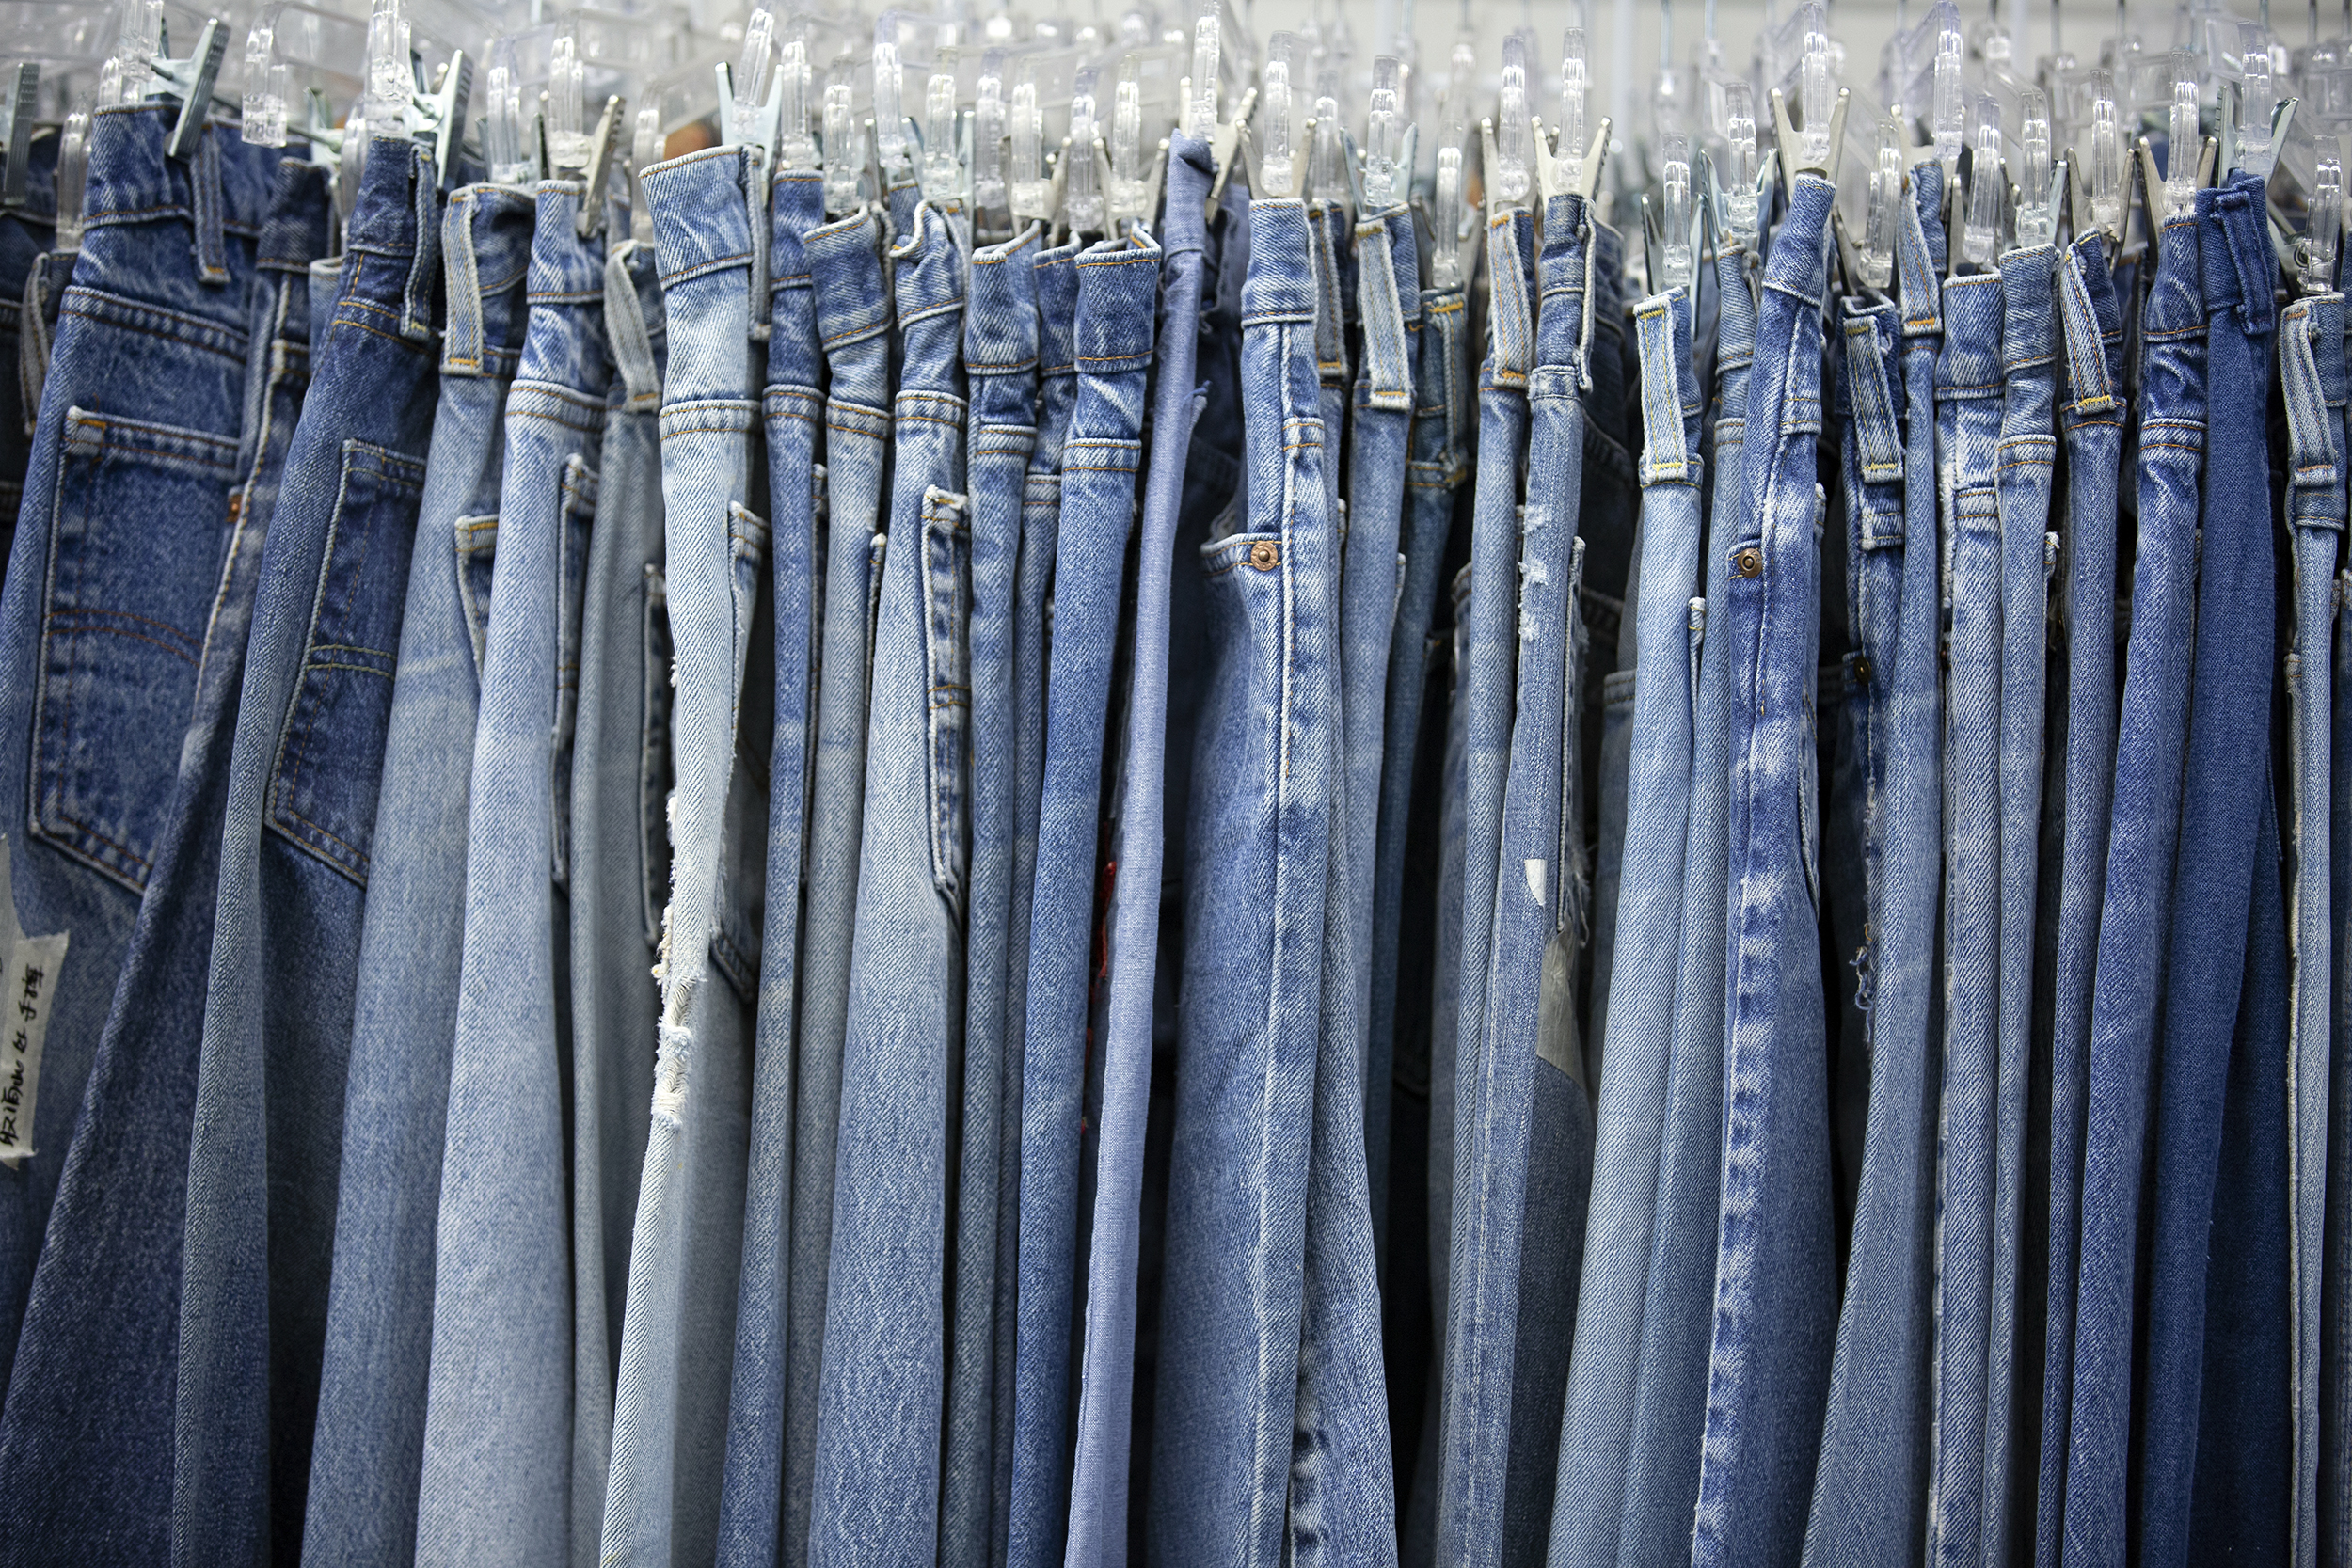 BD9A2580-denim-web.jpg